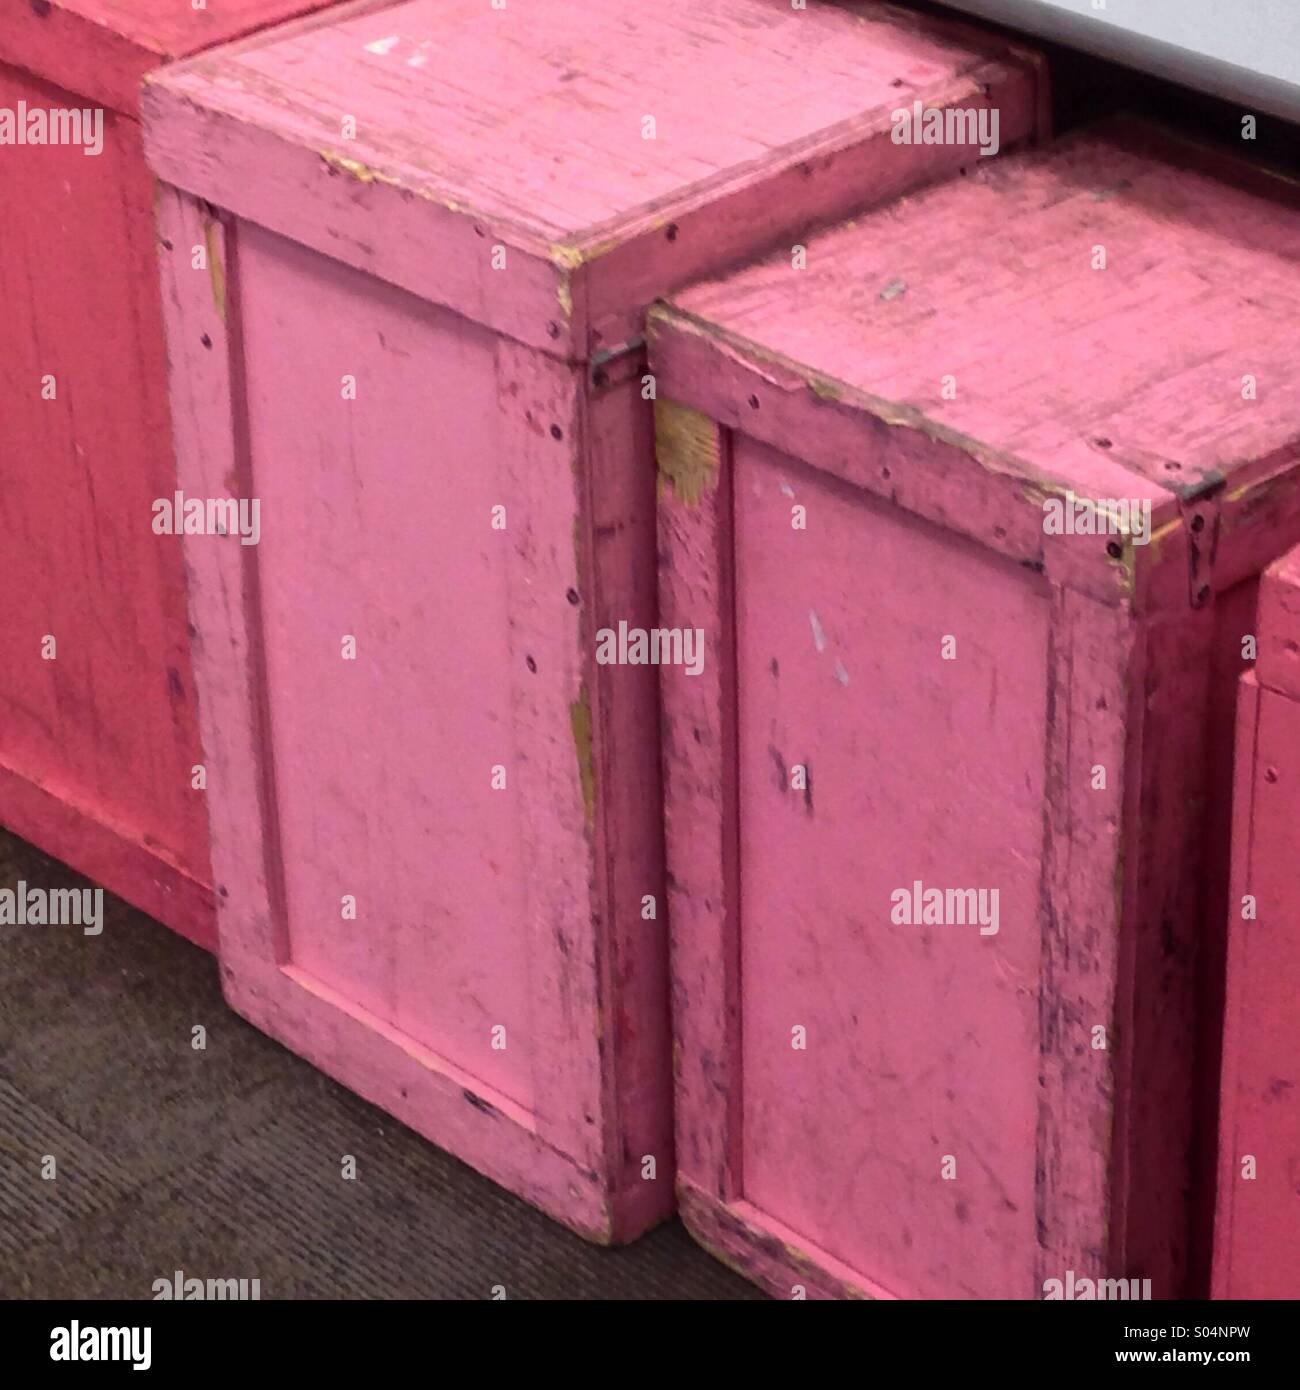 Pink Boxes - Stock Image